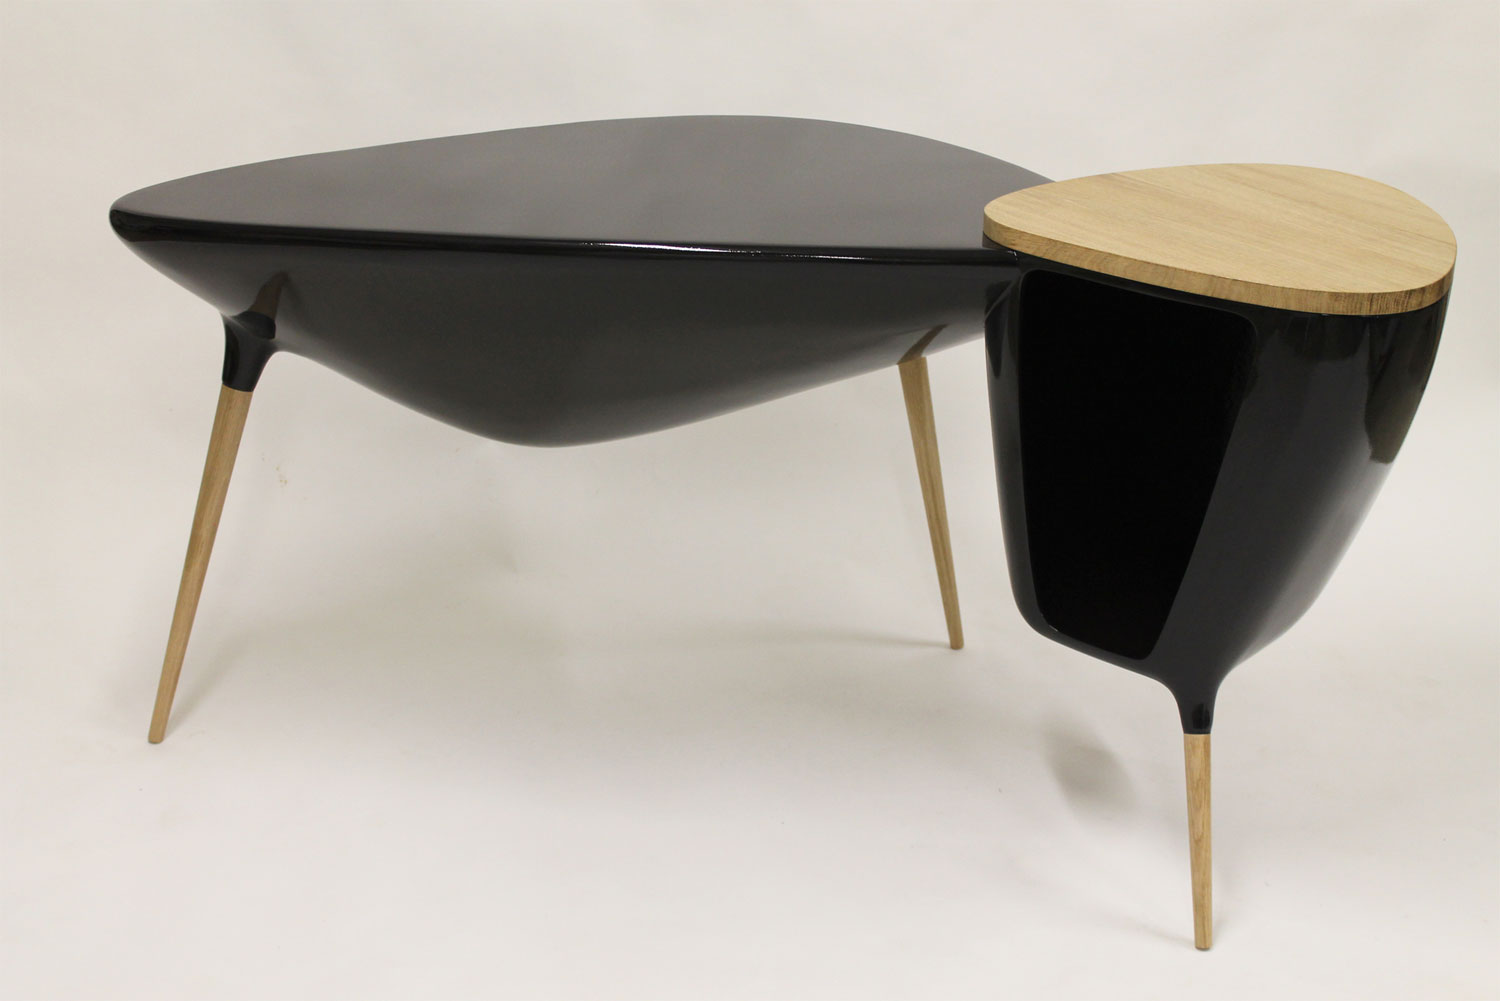 Tripode Desk by Binôme at Design Days Dubai 2014 | Yellowtrace